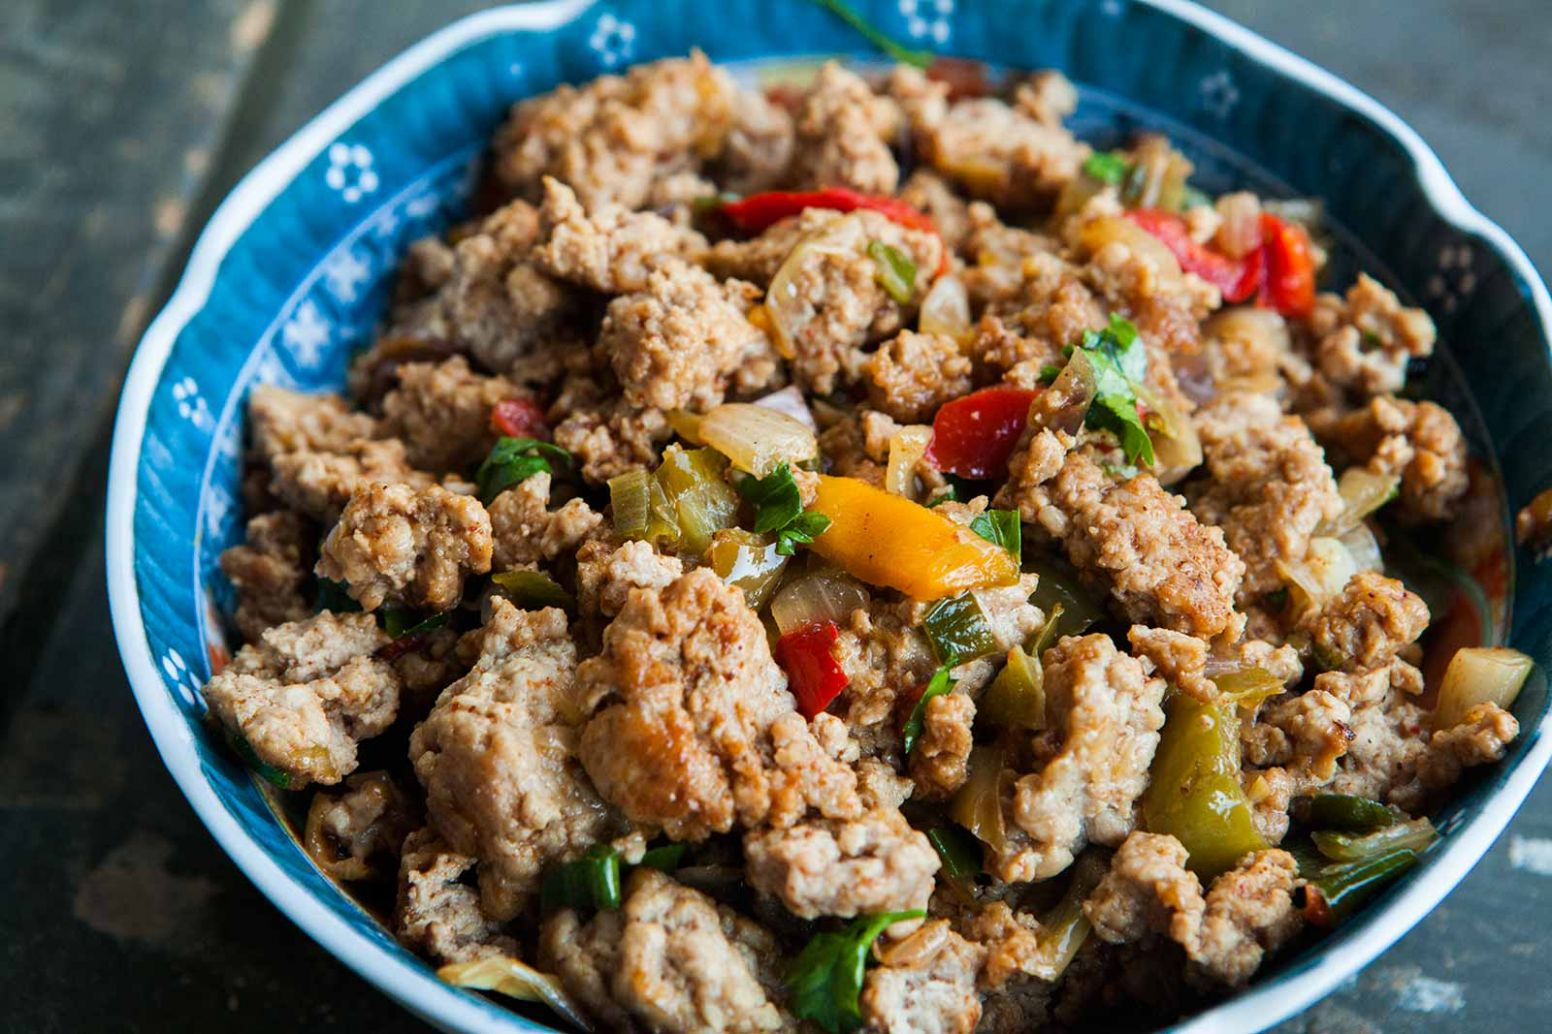 Mom's Ground Turkey and Peppers - Simple Recipes Using Ground Turkey